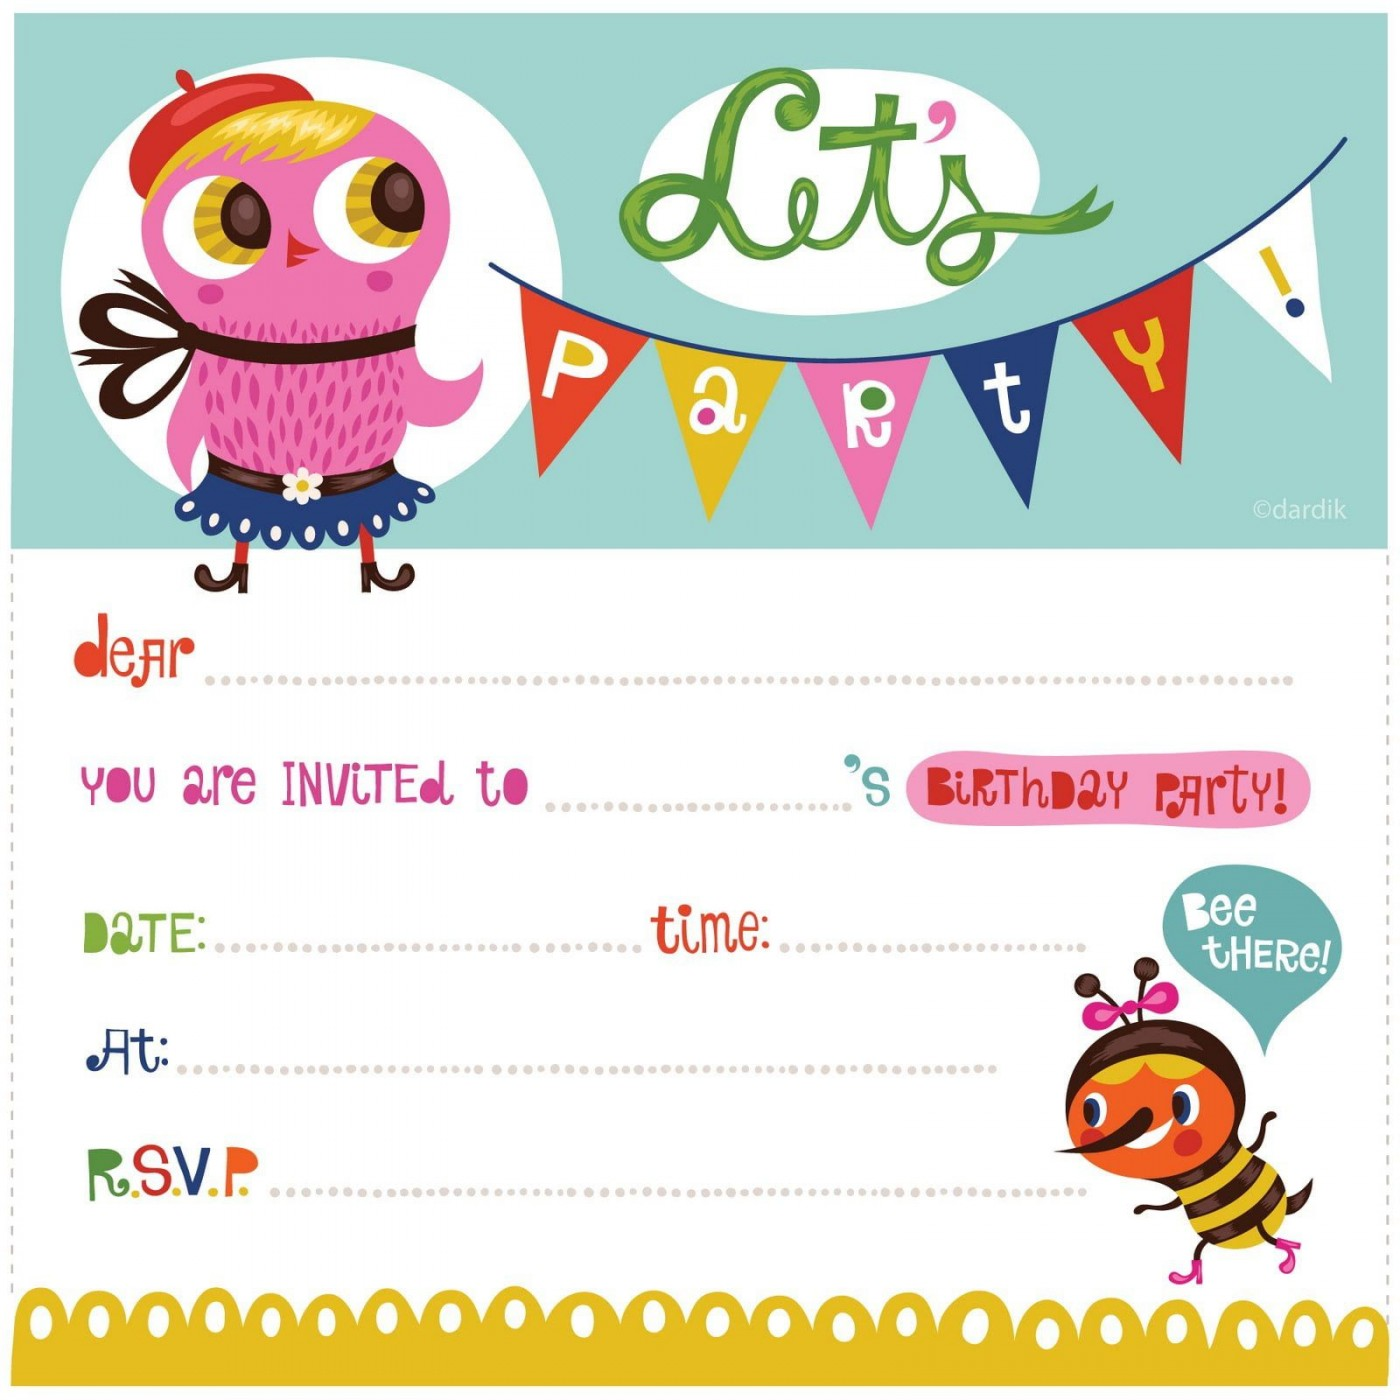 004 Best Free Birthday Party Invitation Template For Word Image 1400